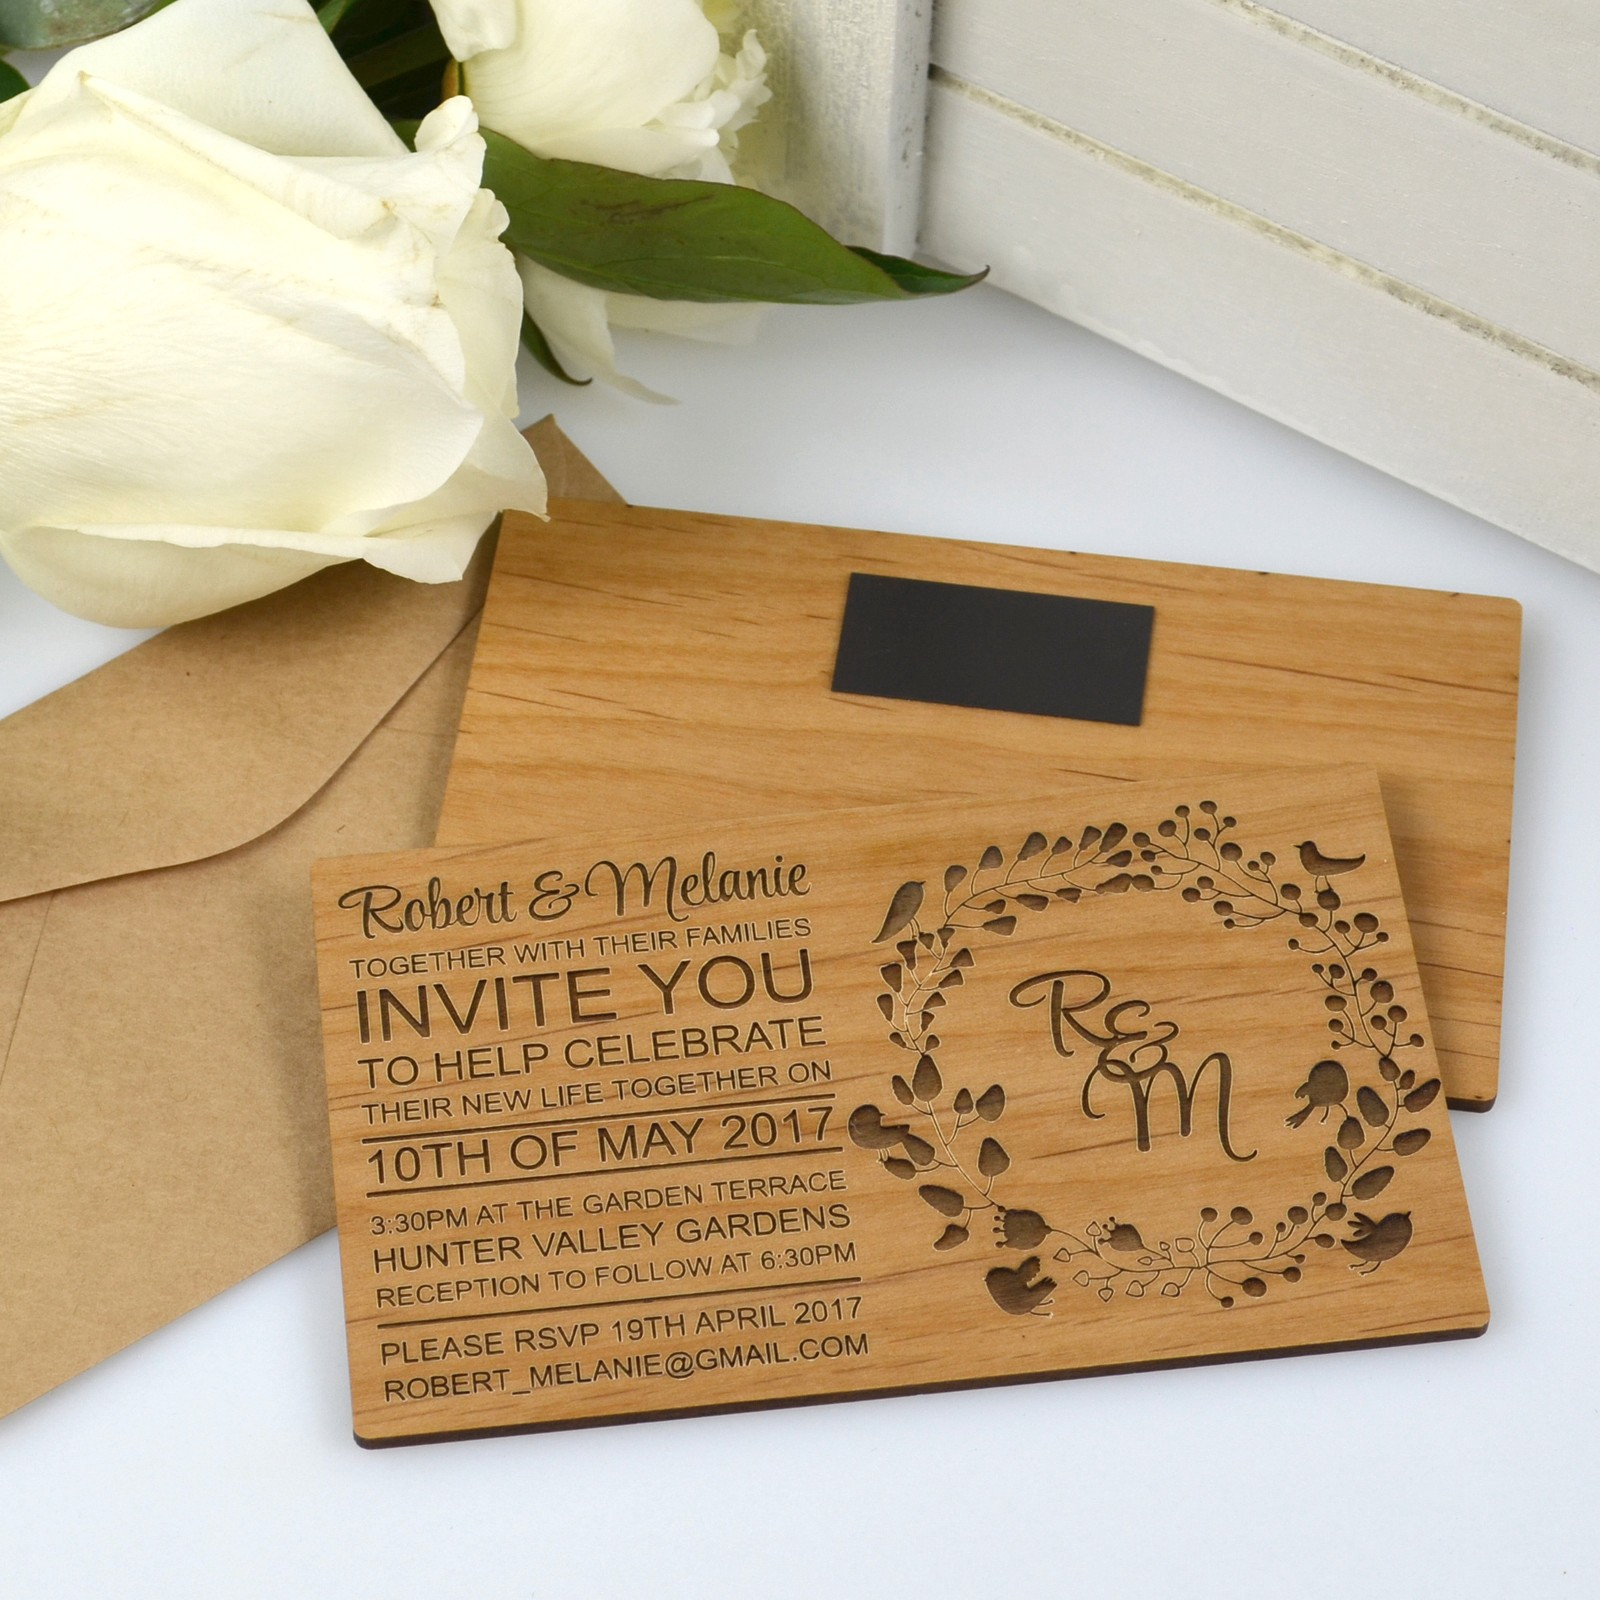 8 Unique Ideas You Need To Know For Wedding Invitation Card